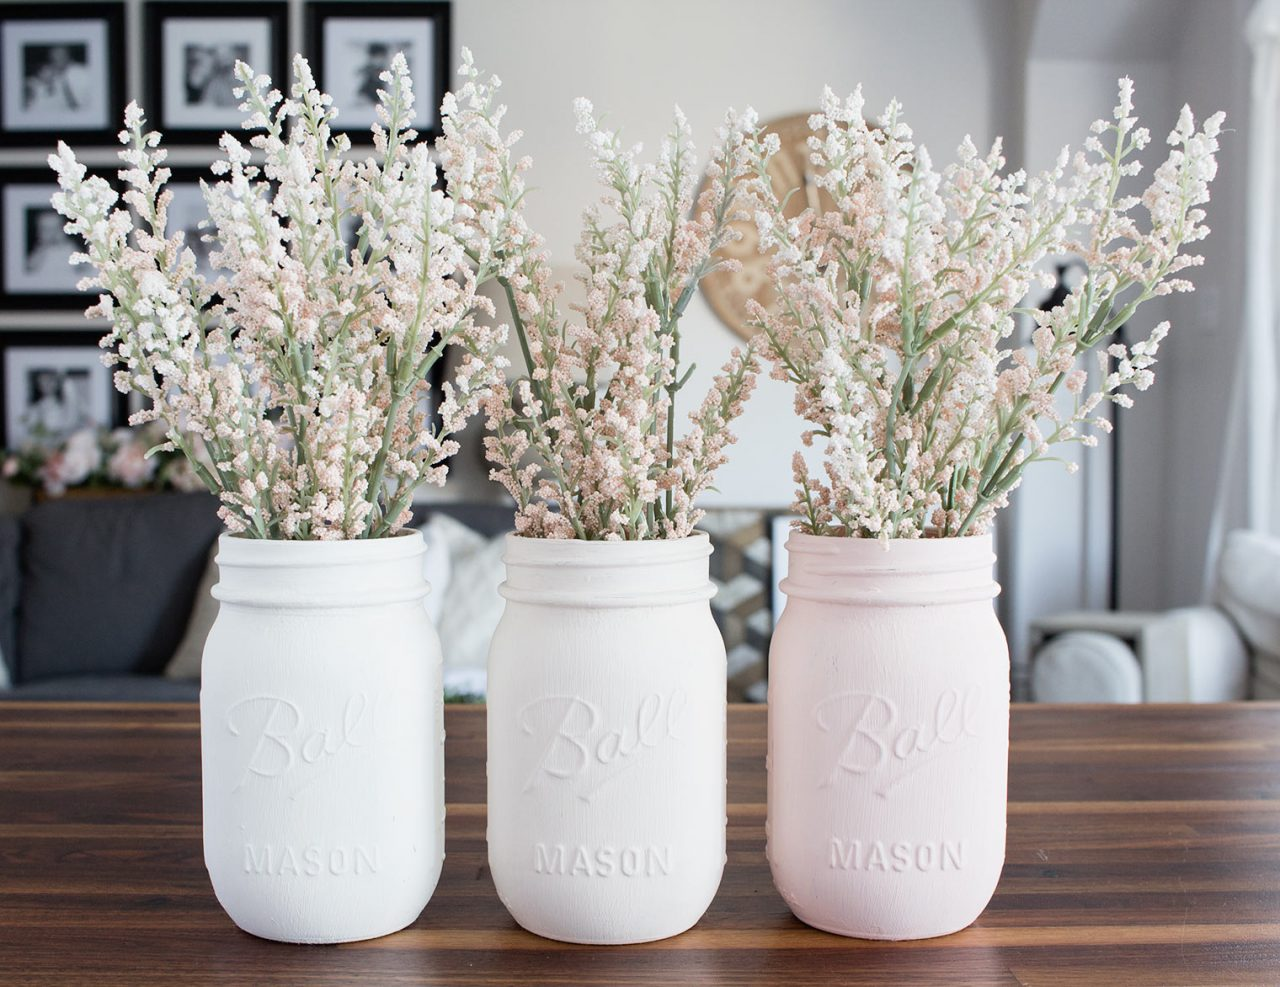 Mason jar vases painted white, cream and light pink with flowers.